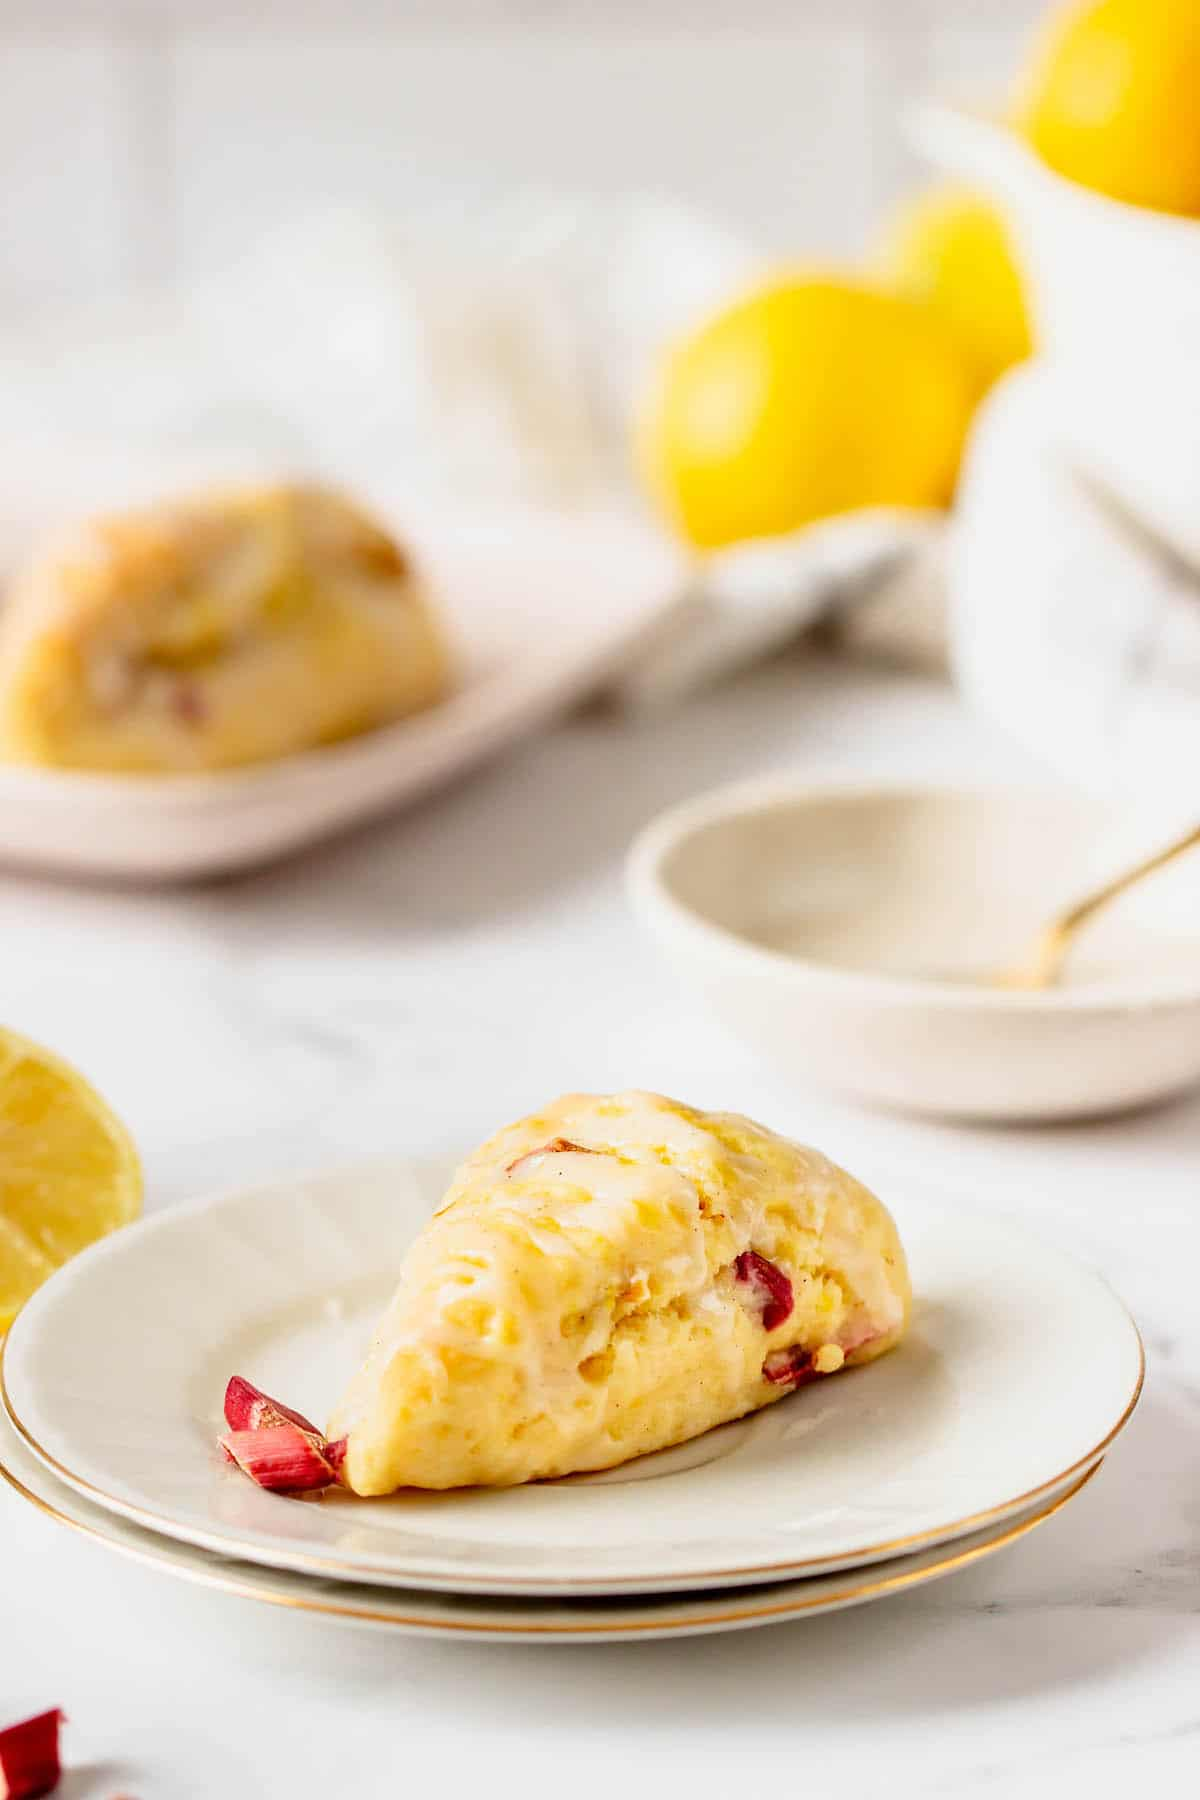 A lemon scone on a plate with another in the background